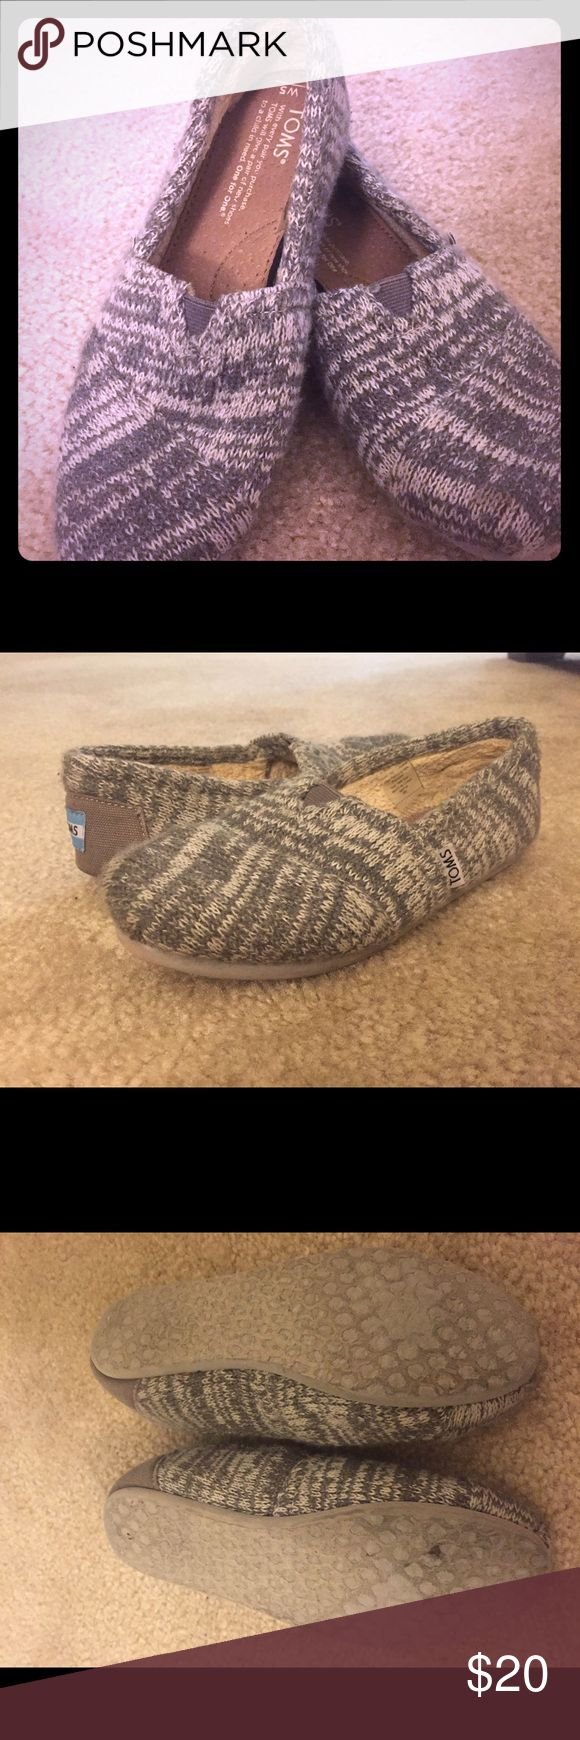 Toms Fur Lined Classic Wool Slip-On- Size 5 Gently used and in great condition! I am generally a 5 in TOMS, but these were a tad too small. Some scuffing on the bottom of the shoes and matting in the fur by the heal, but other than that look and smell like new! Never worn without half socks! TOMS Shoes Sneakers